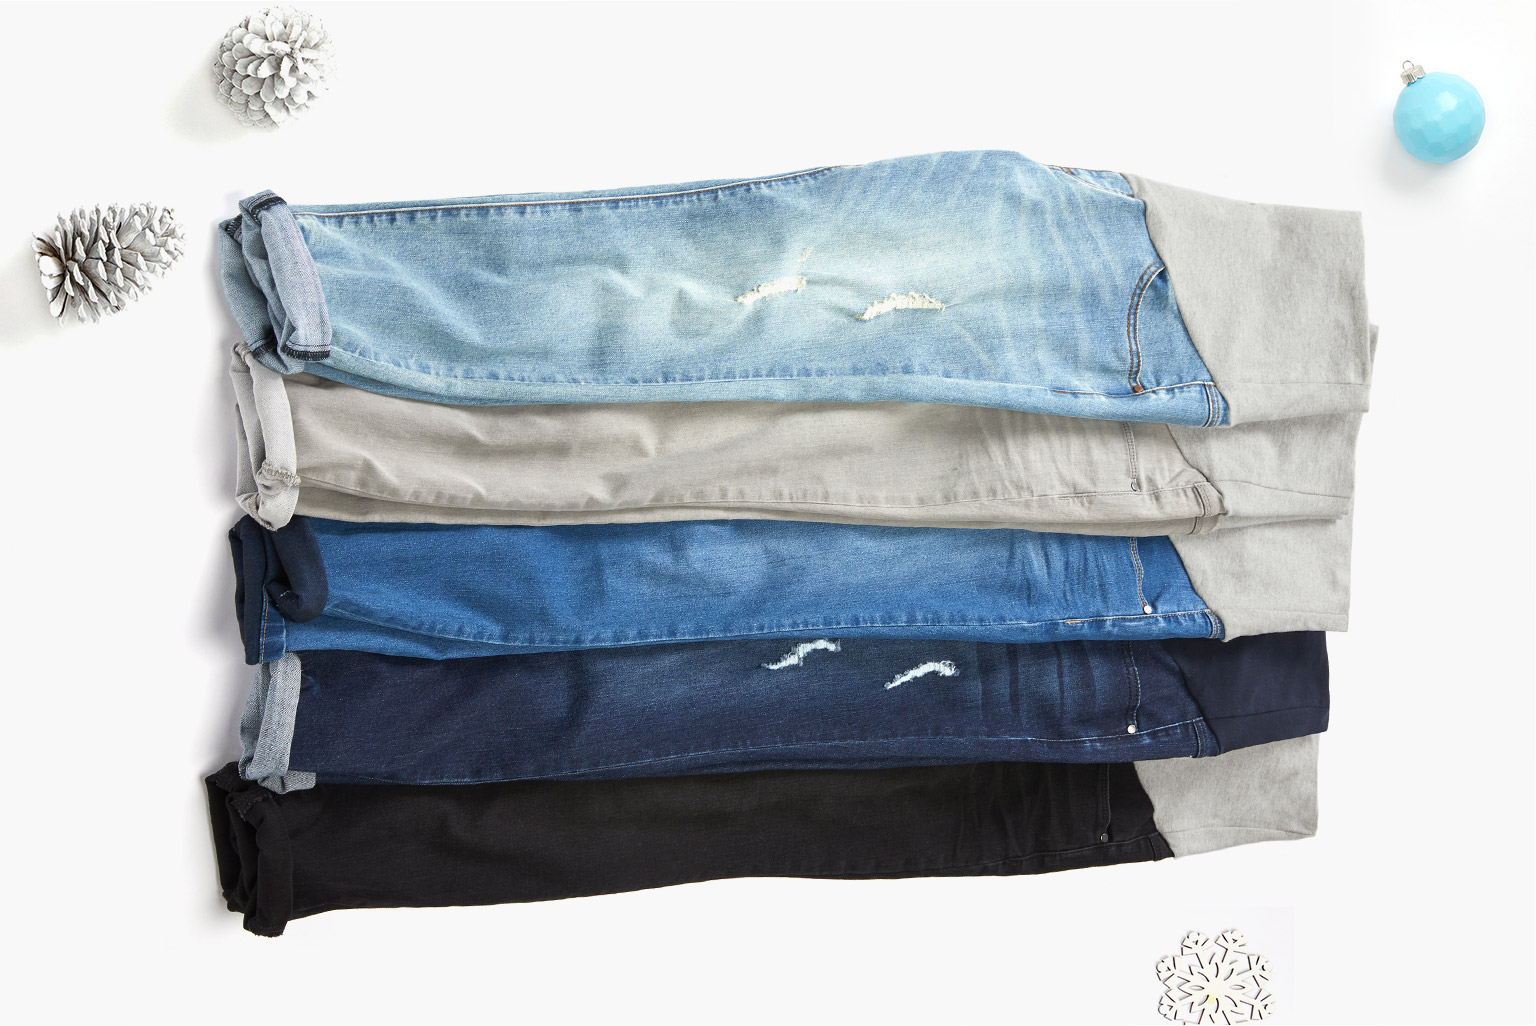 Coveted jeans. With modern washes and built-in belly panels for bump support and coverage